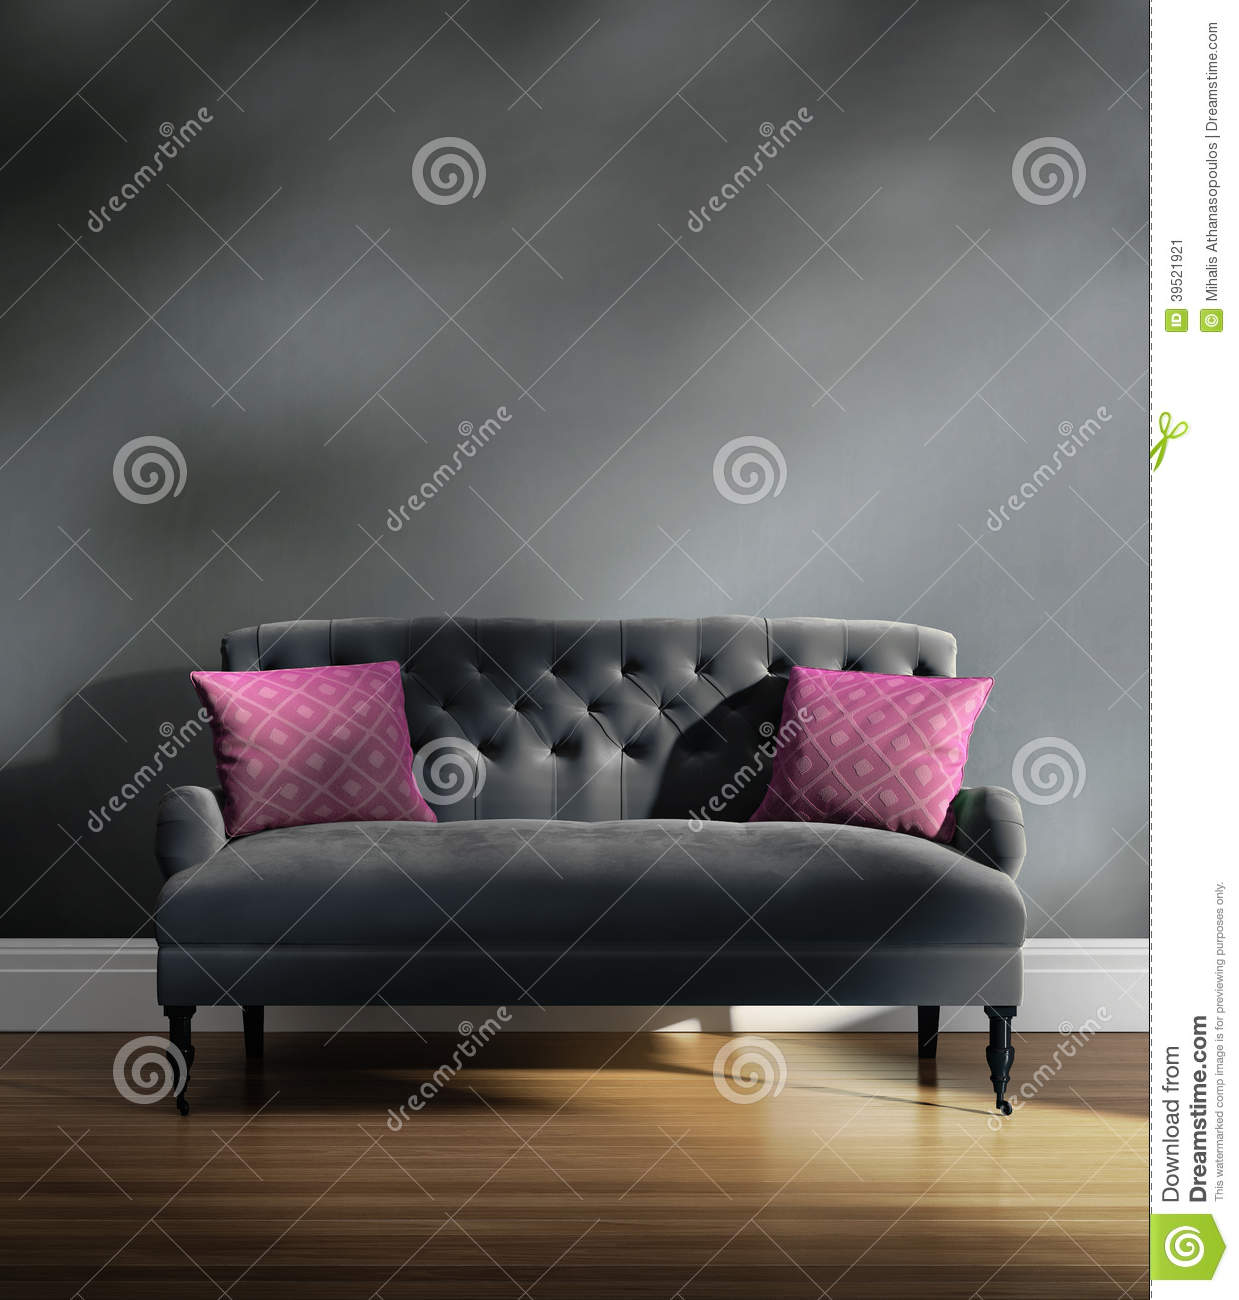 Sofa Design Royal Contemporary Elegant Luxury Grey Velvet Sofa With Pink